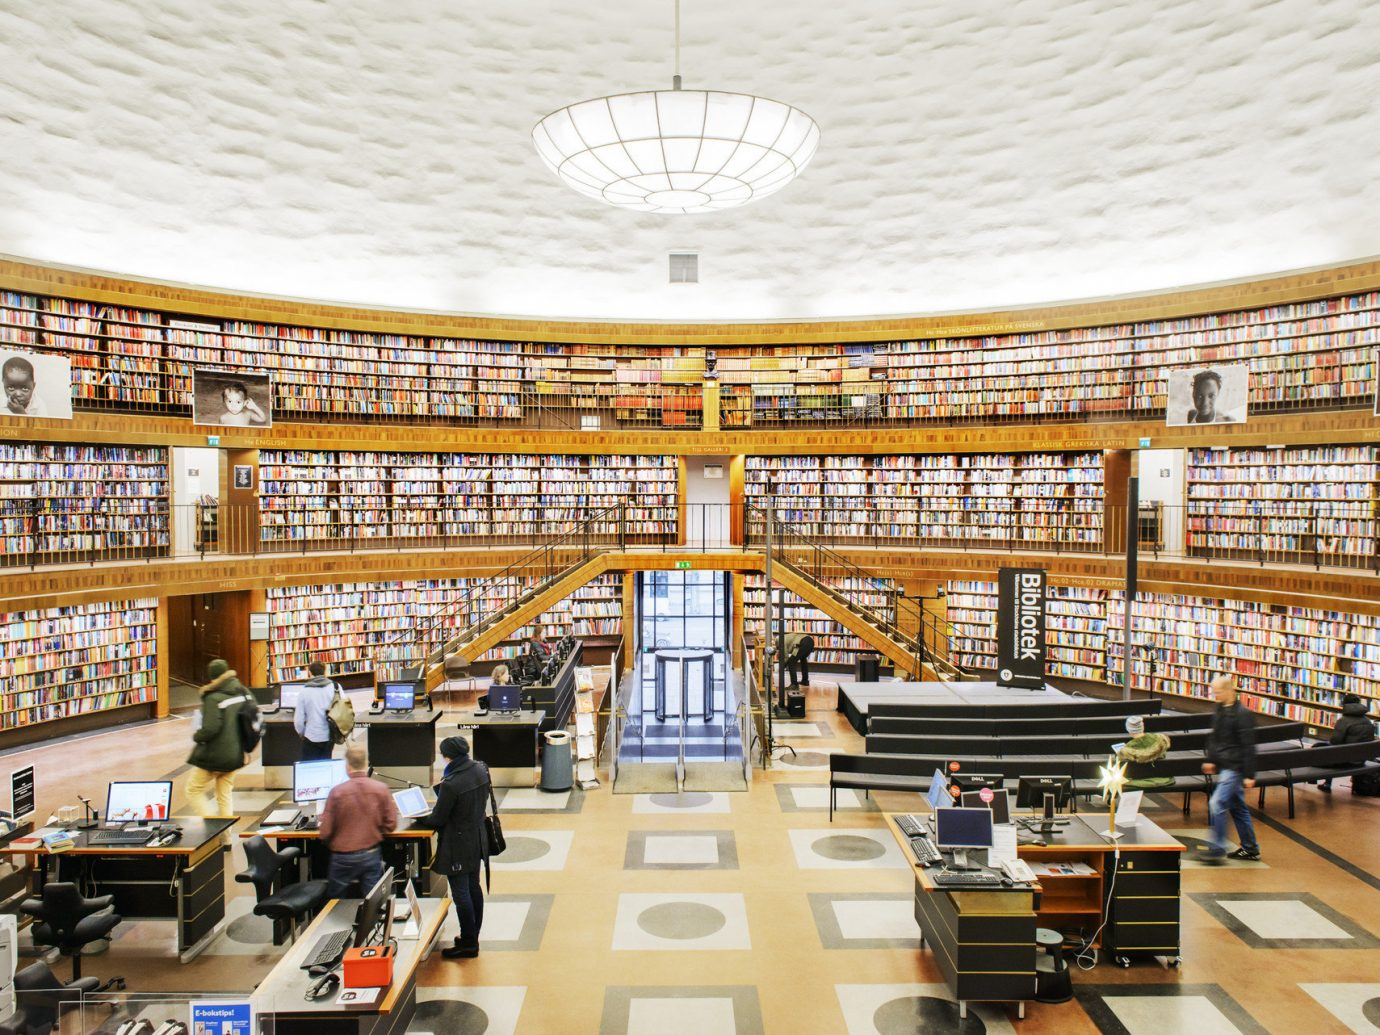 Travel Tips indoor library public library scene building retail room bookselling